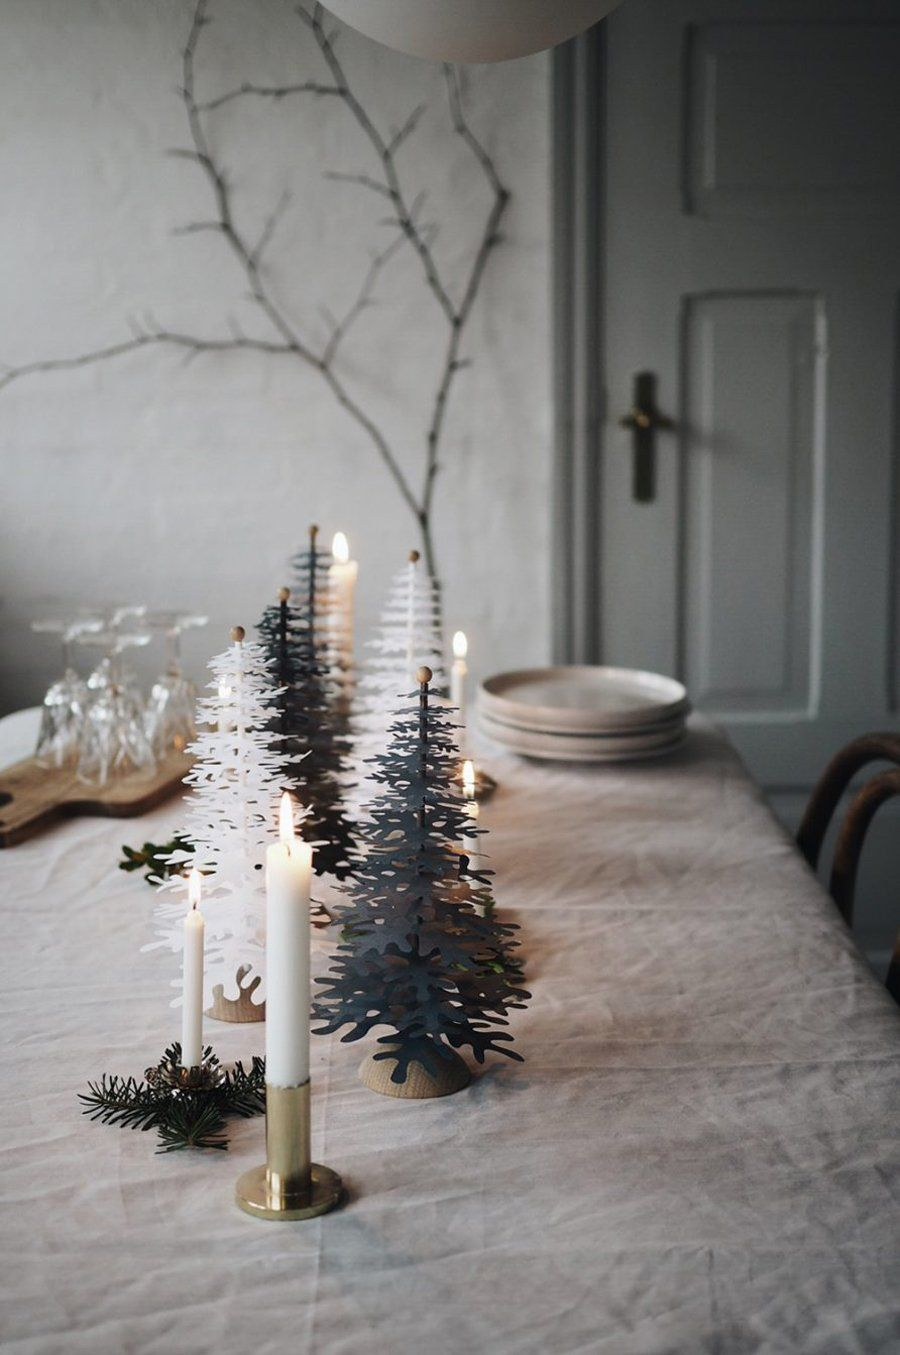 Interior Trends Top Christmas Decorating Trends For 2020 2021 Paper Christmas Decorations Christmas Decorations Christmas Inspiration